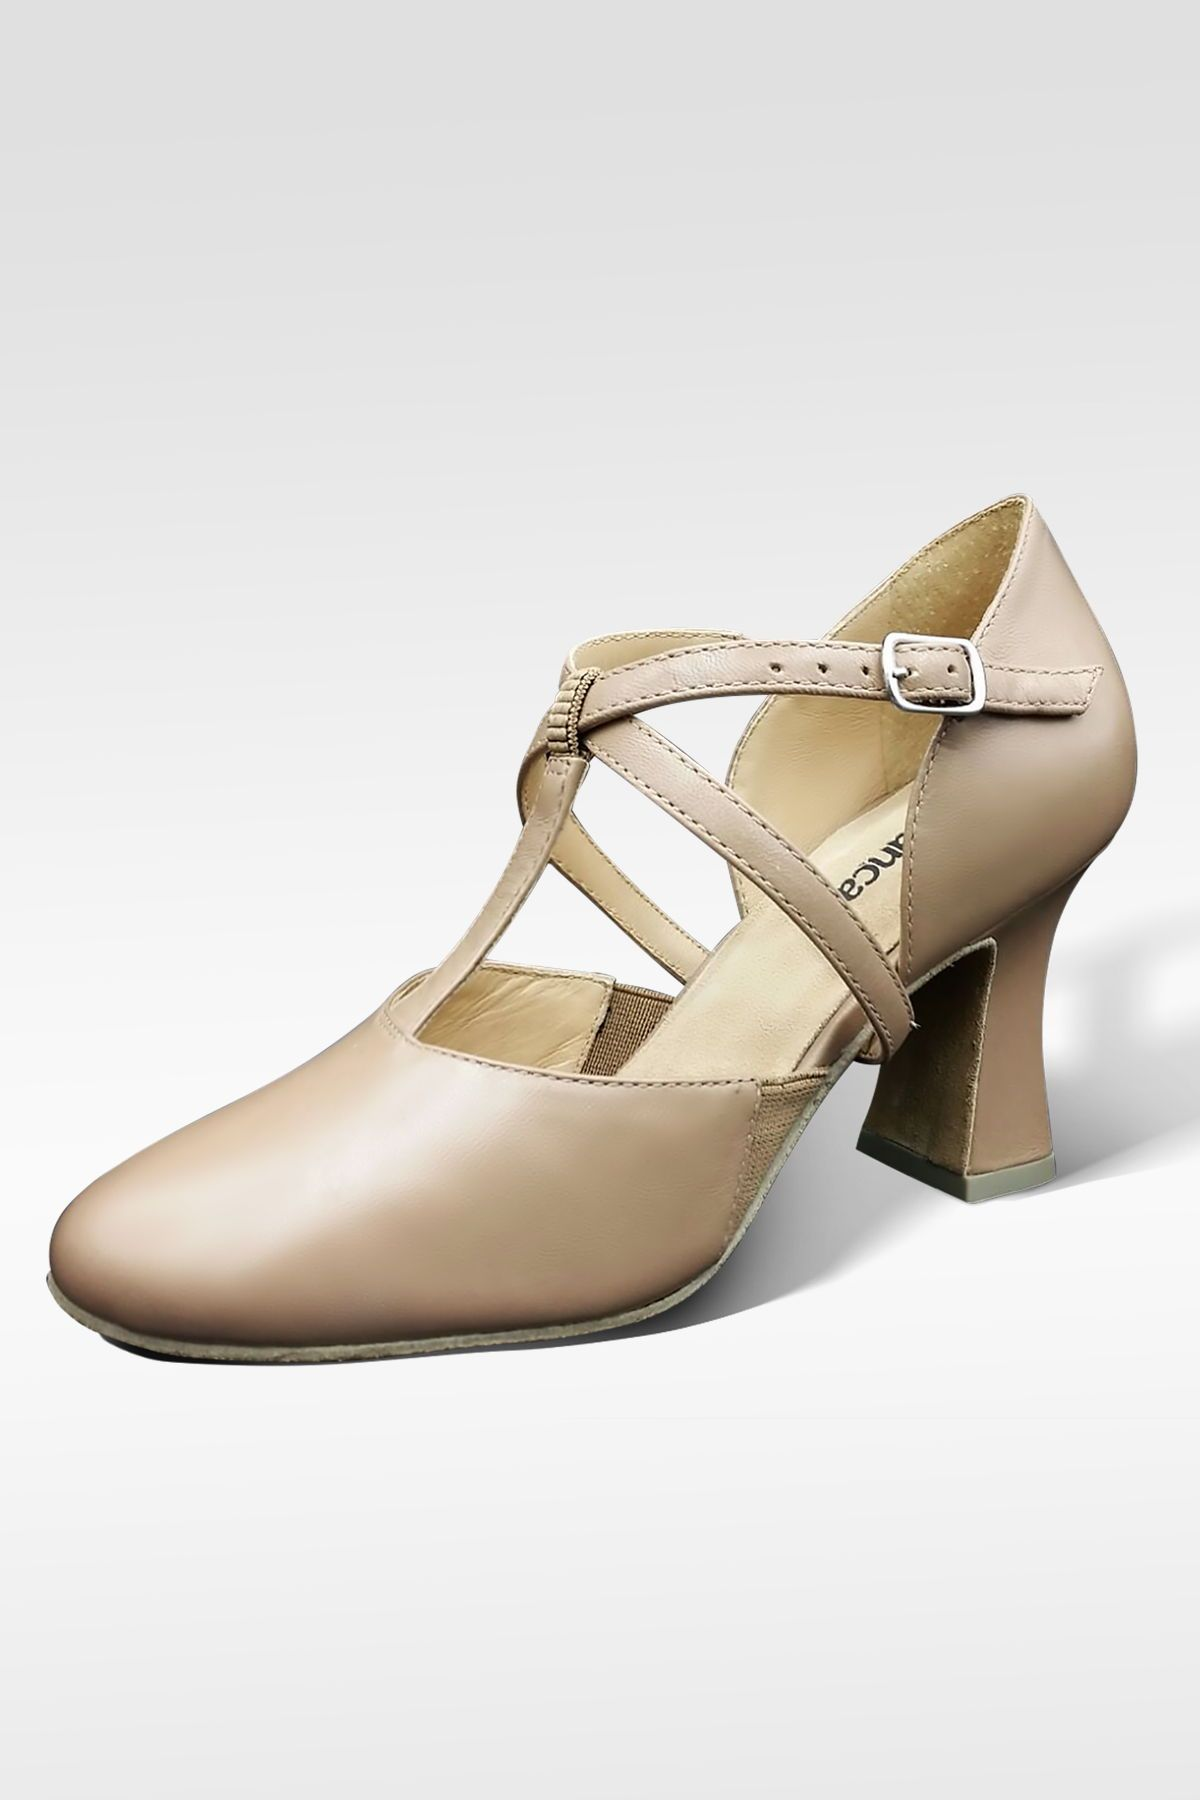 bfd1141b8 This So Danca Broadway Cabaret T-strap 3 inch heel shoe will set you apart  in class and onstage.